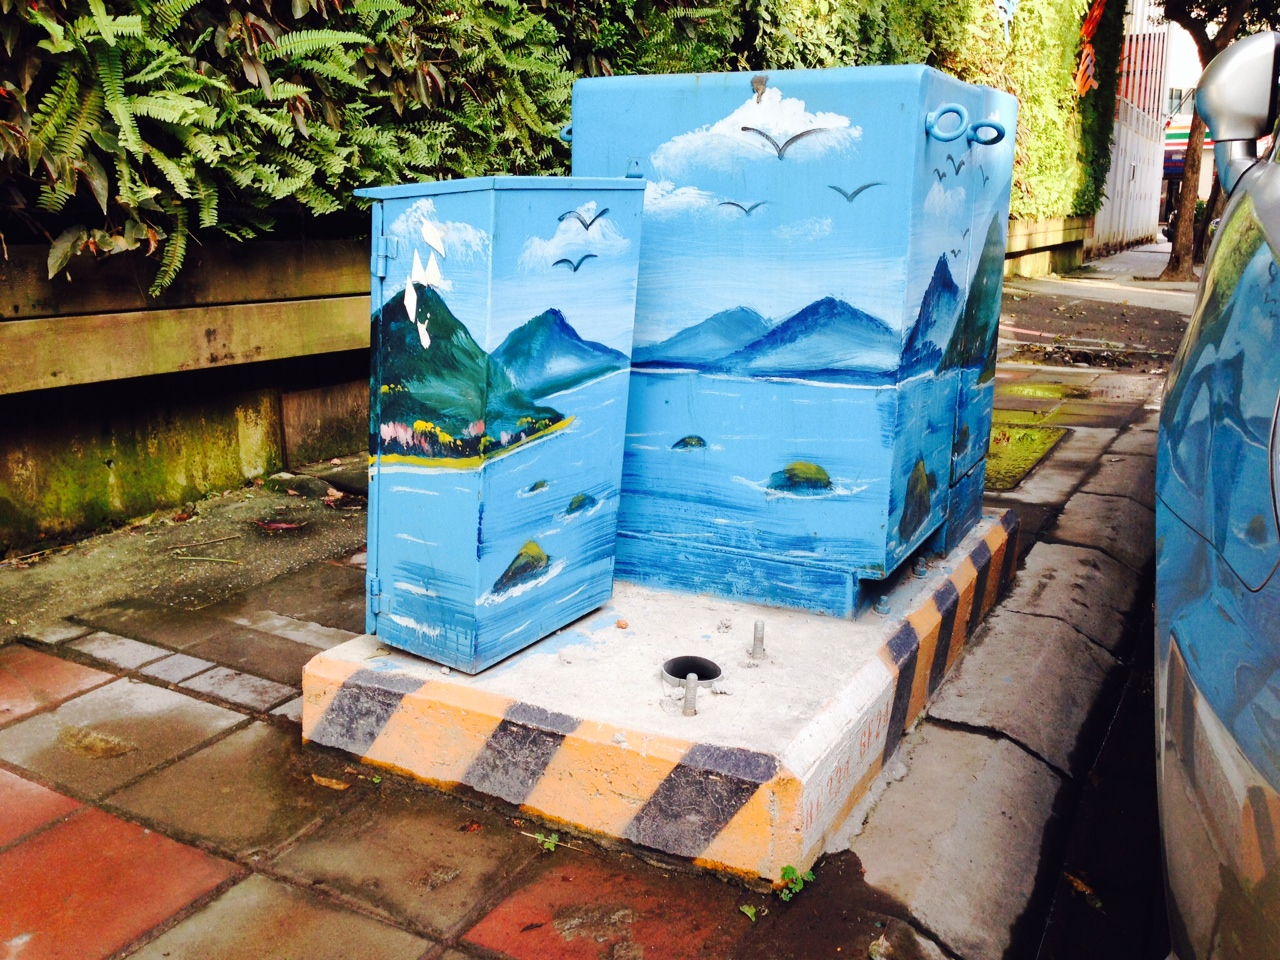 Please Stop Painting The Electrical Boxes A Public Art Proposal